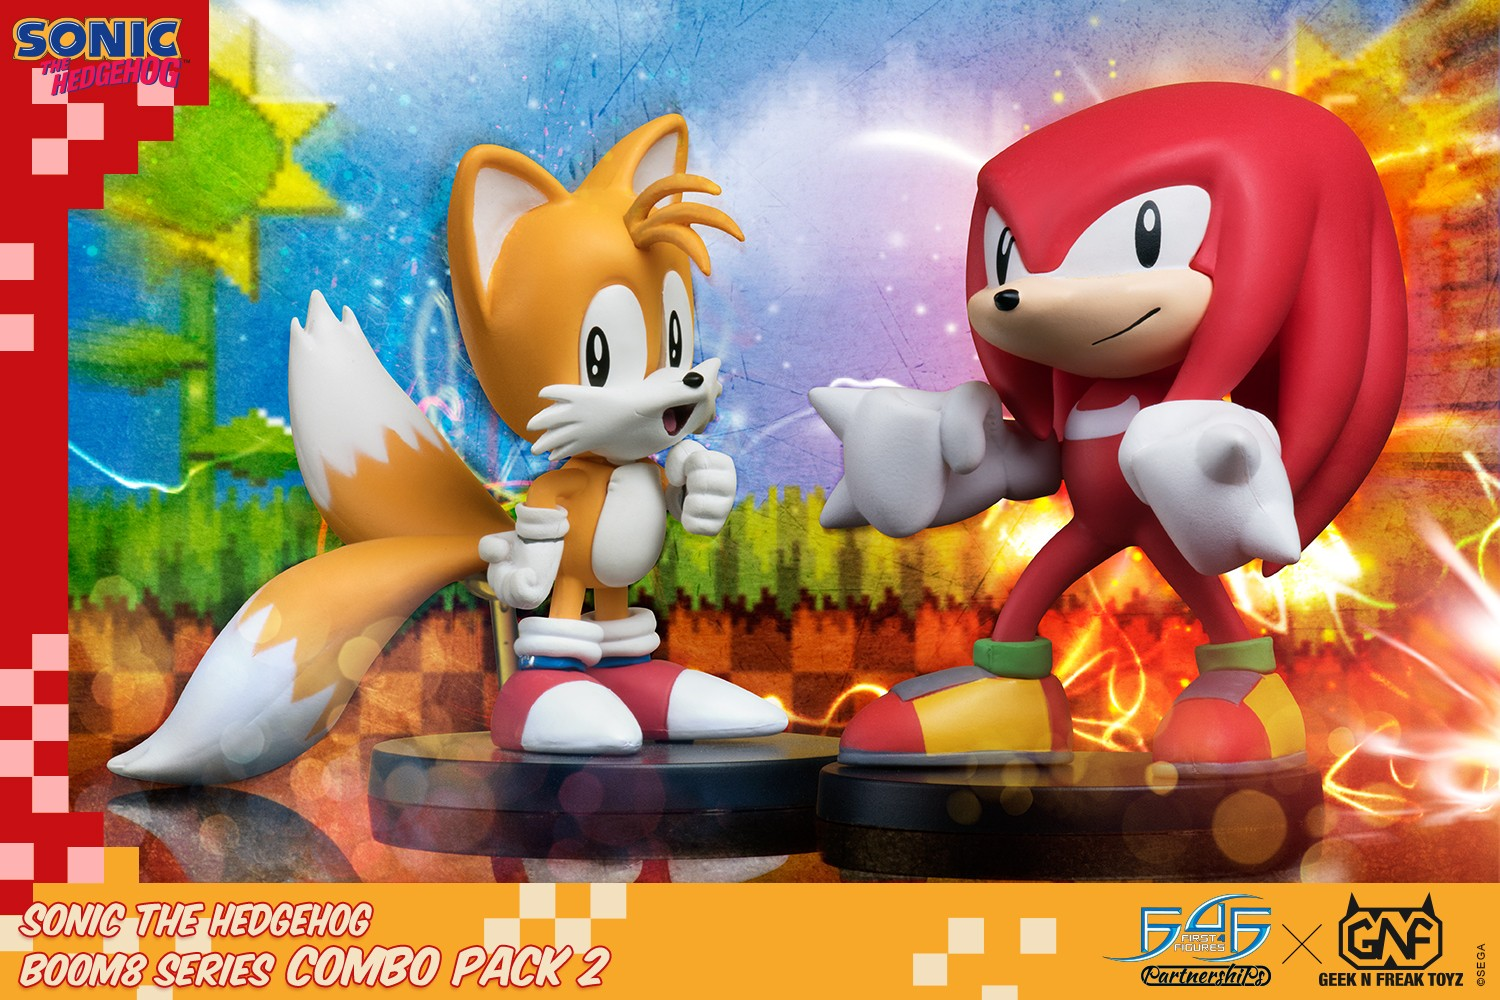 Sonic The Hedgehog Boom8 Series Combo Pack 2